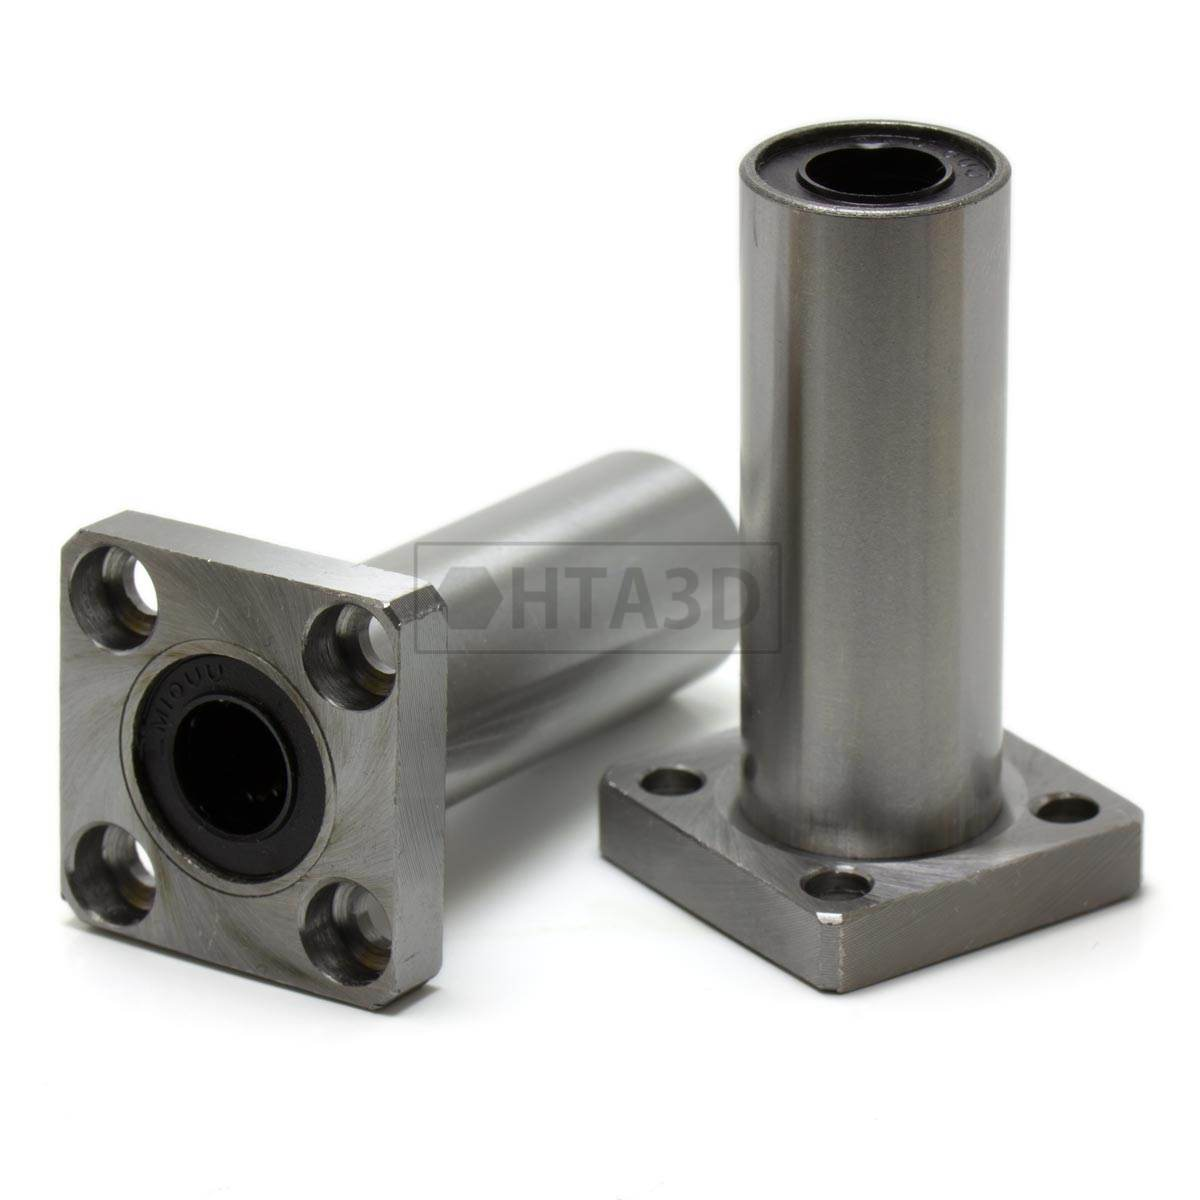 Lmk10luu Linear Bearing With Square Edge Hta3d Bracket Sk10 Untuk Shaft 10mm Vertical